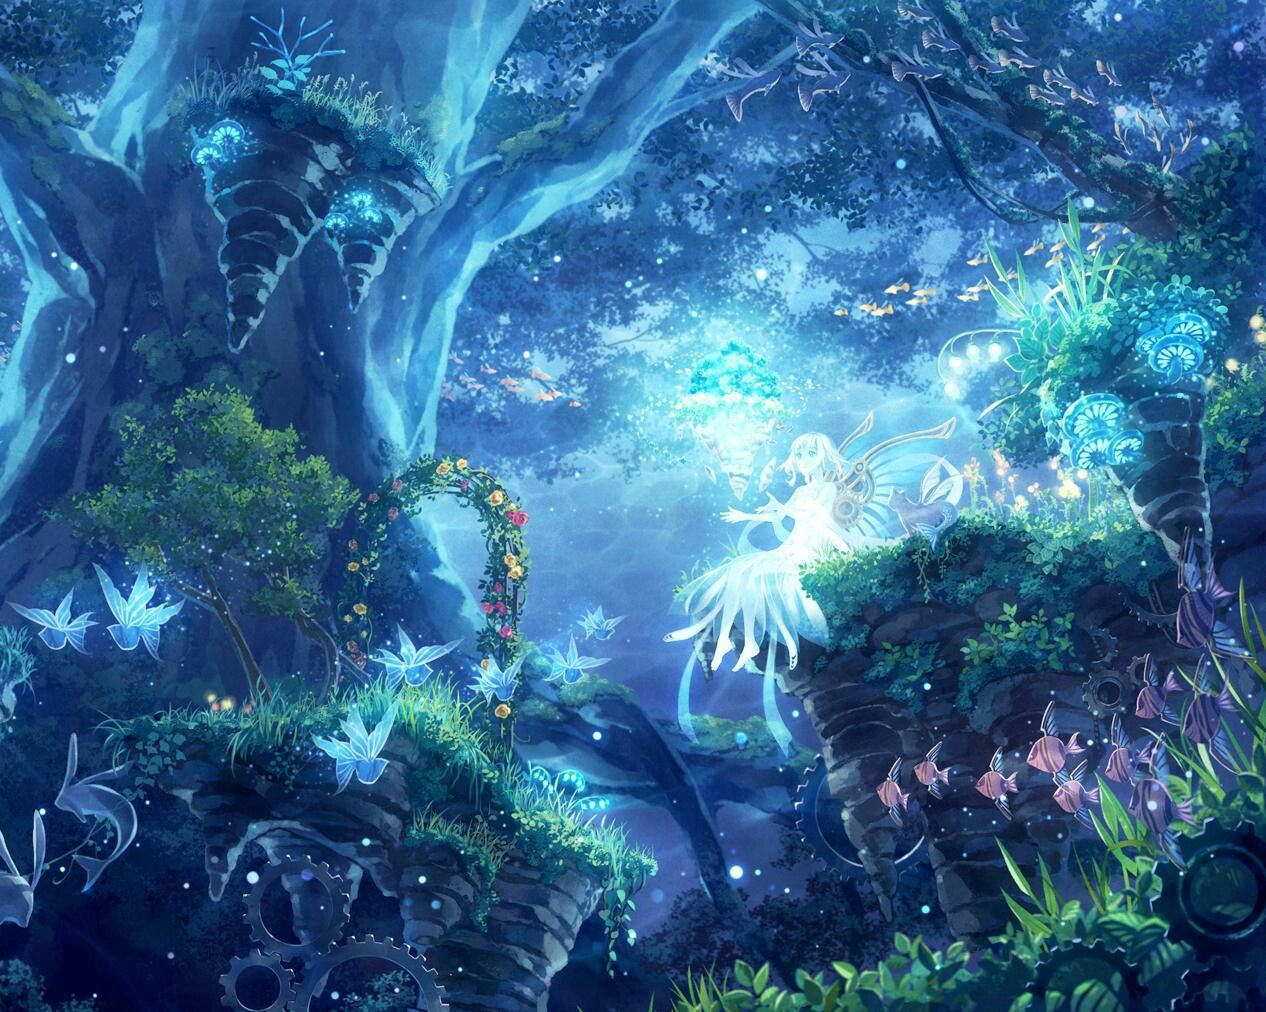 1of My Fav Colors Is Pretty Shades Of Blues That Glow In The Night So I Love This With All The Hidden Flyin Anime Scenery Fantasy Forest Fantasy Landscape